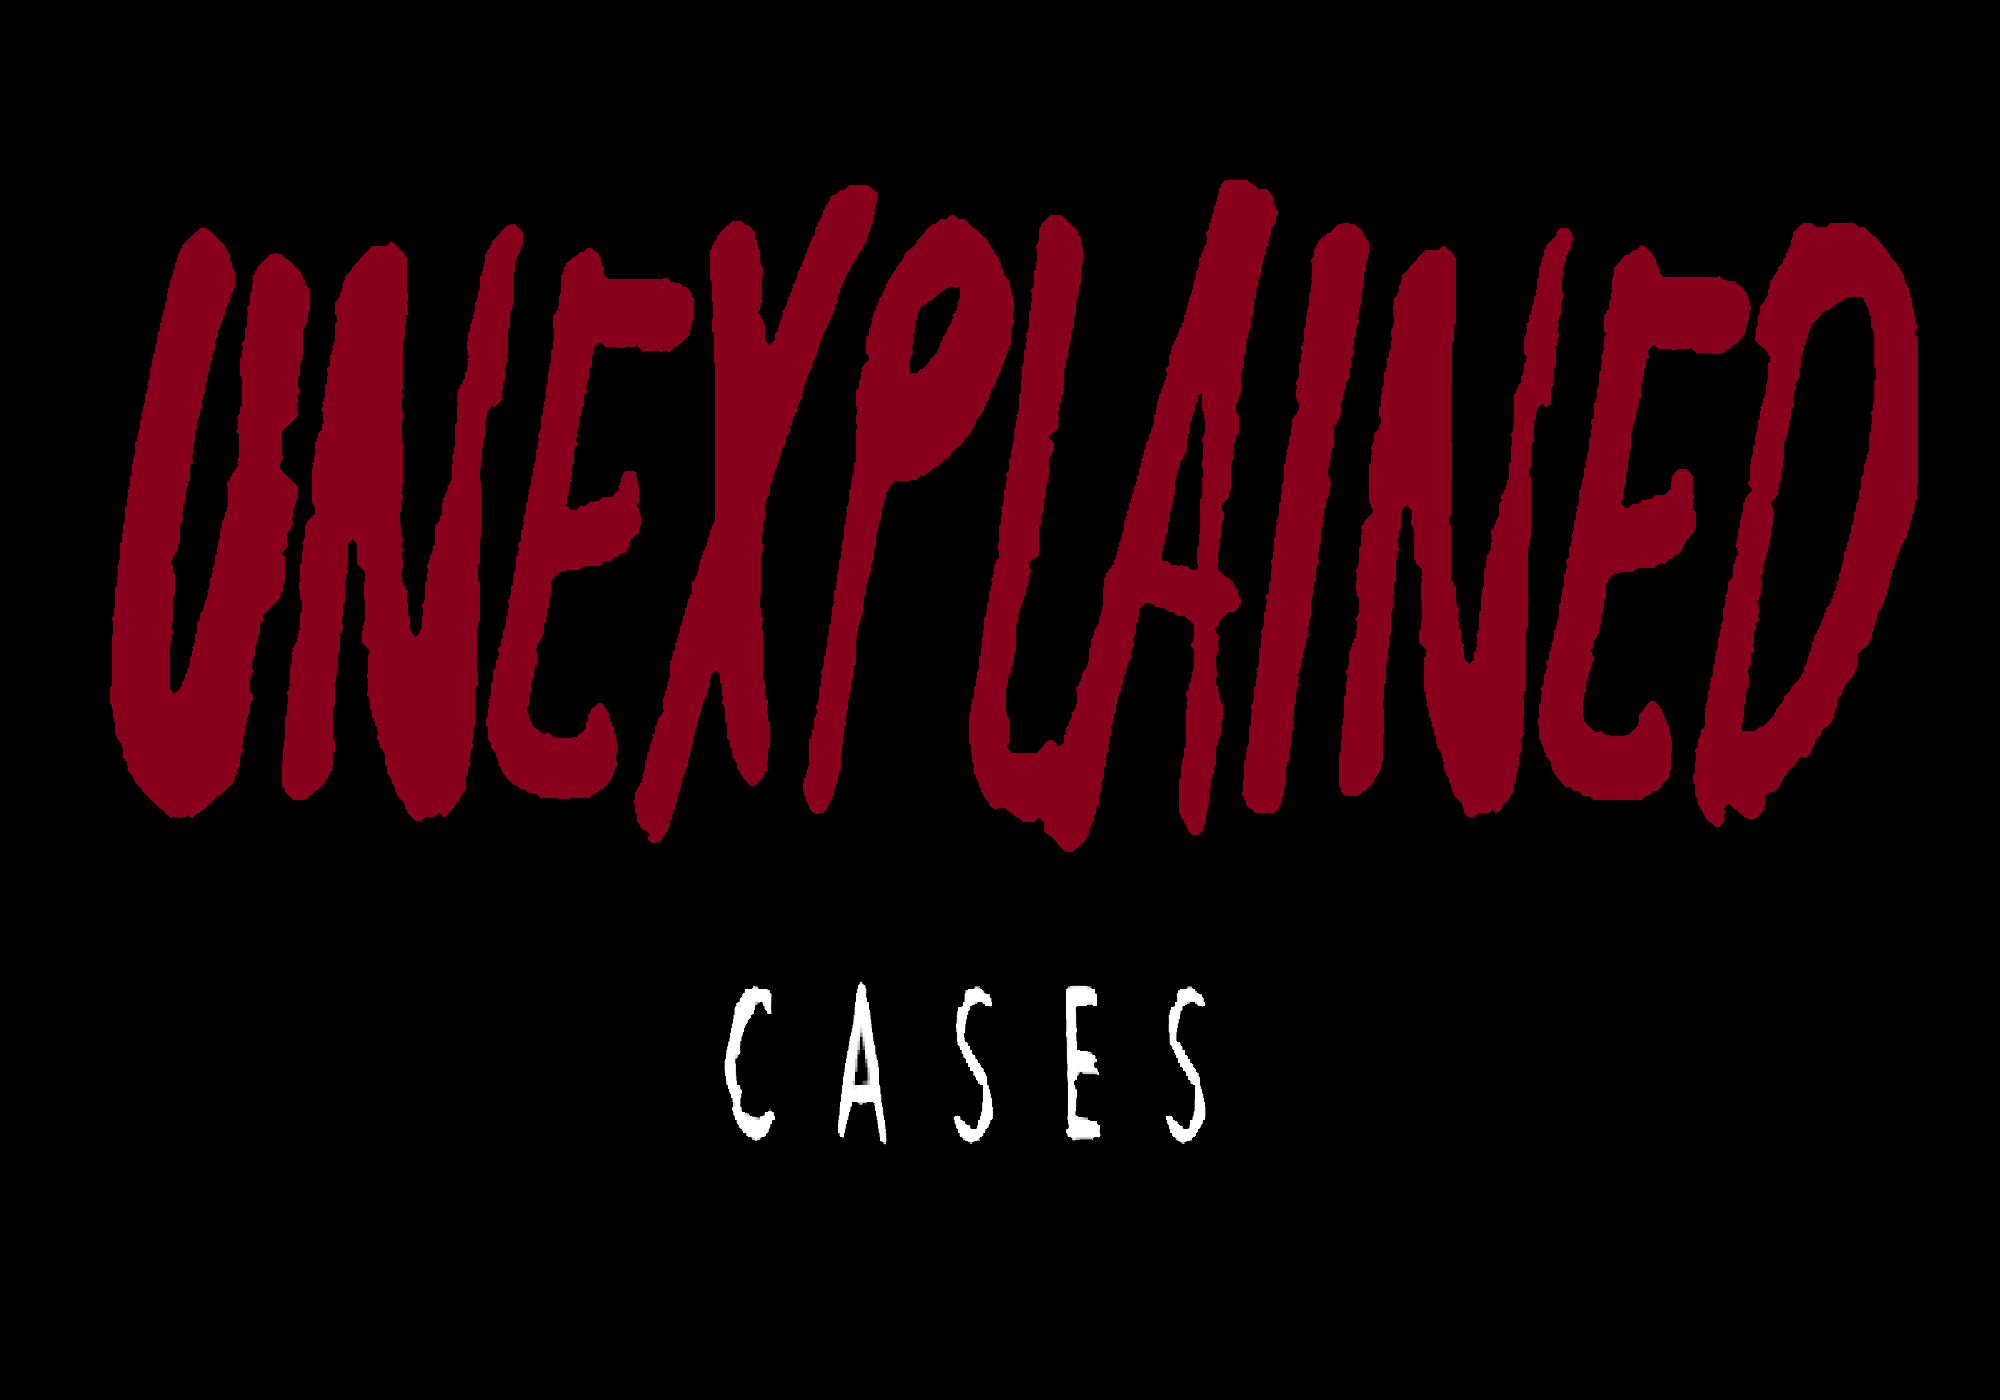 Artwork for (VIDEO) Unexplained Cases Episode 1: Haunted Hotel and More in Wickenburg, AZ